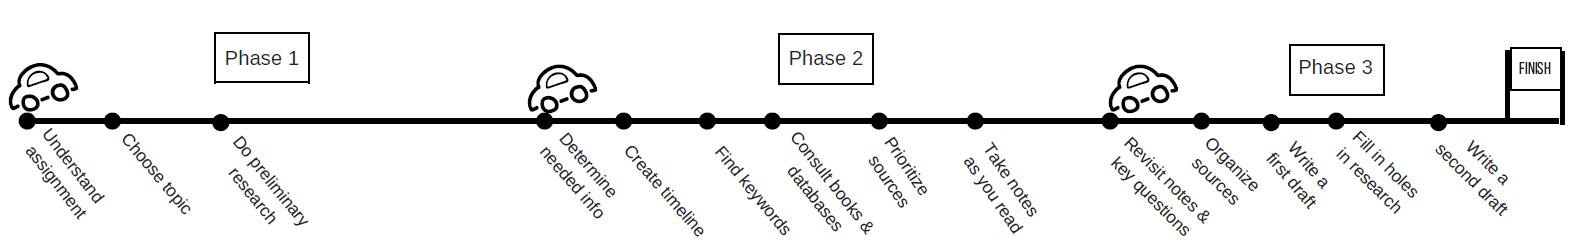 Timeline of process